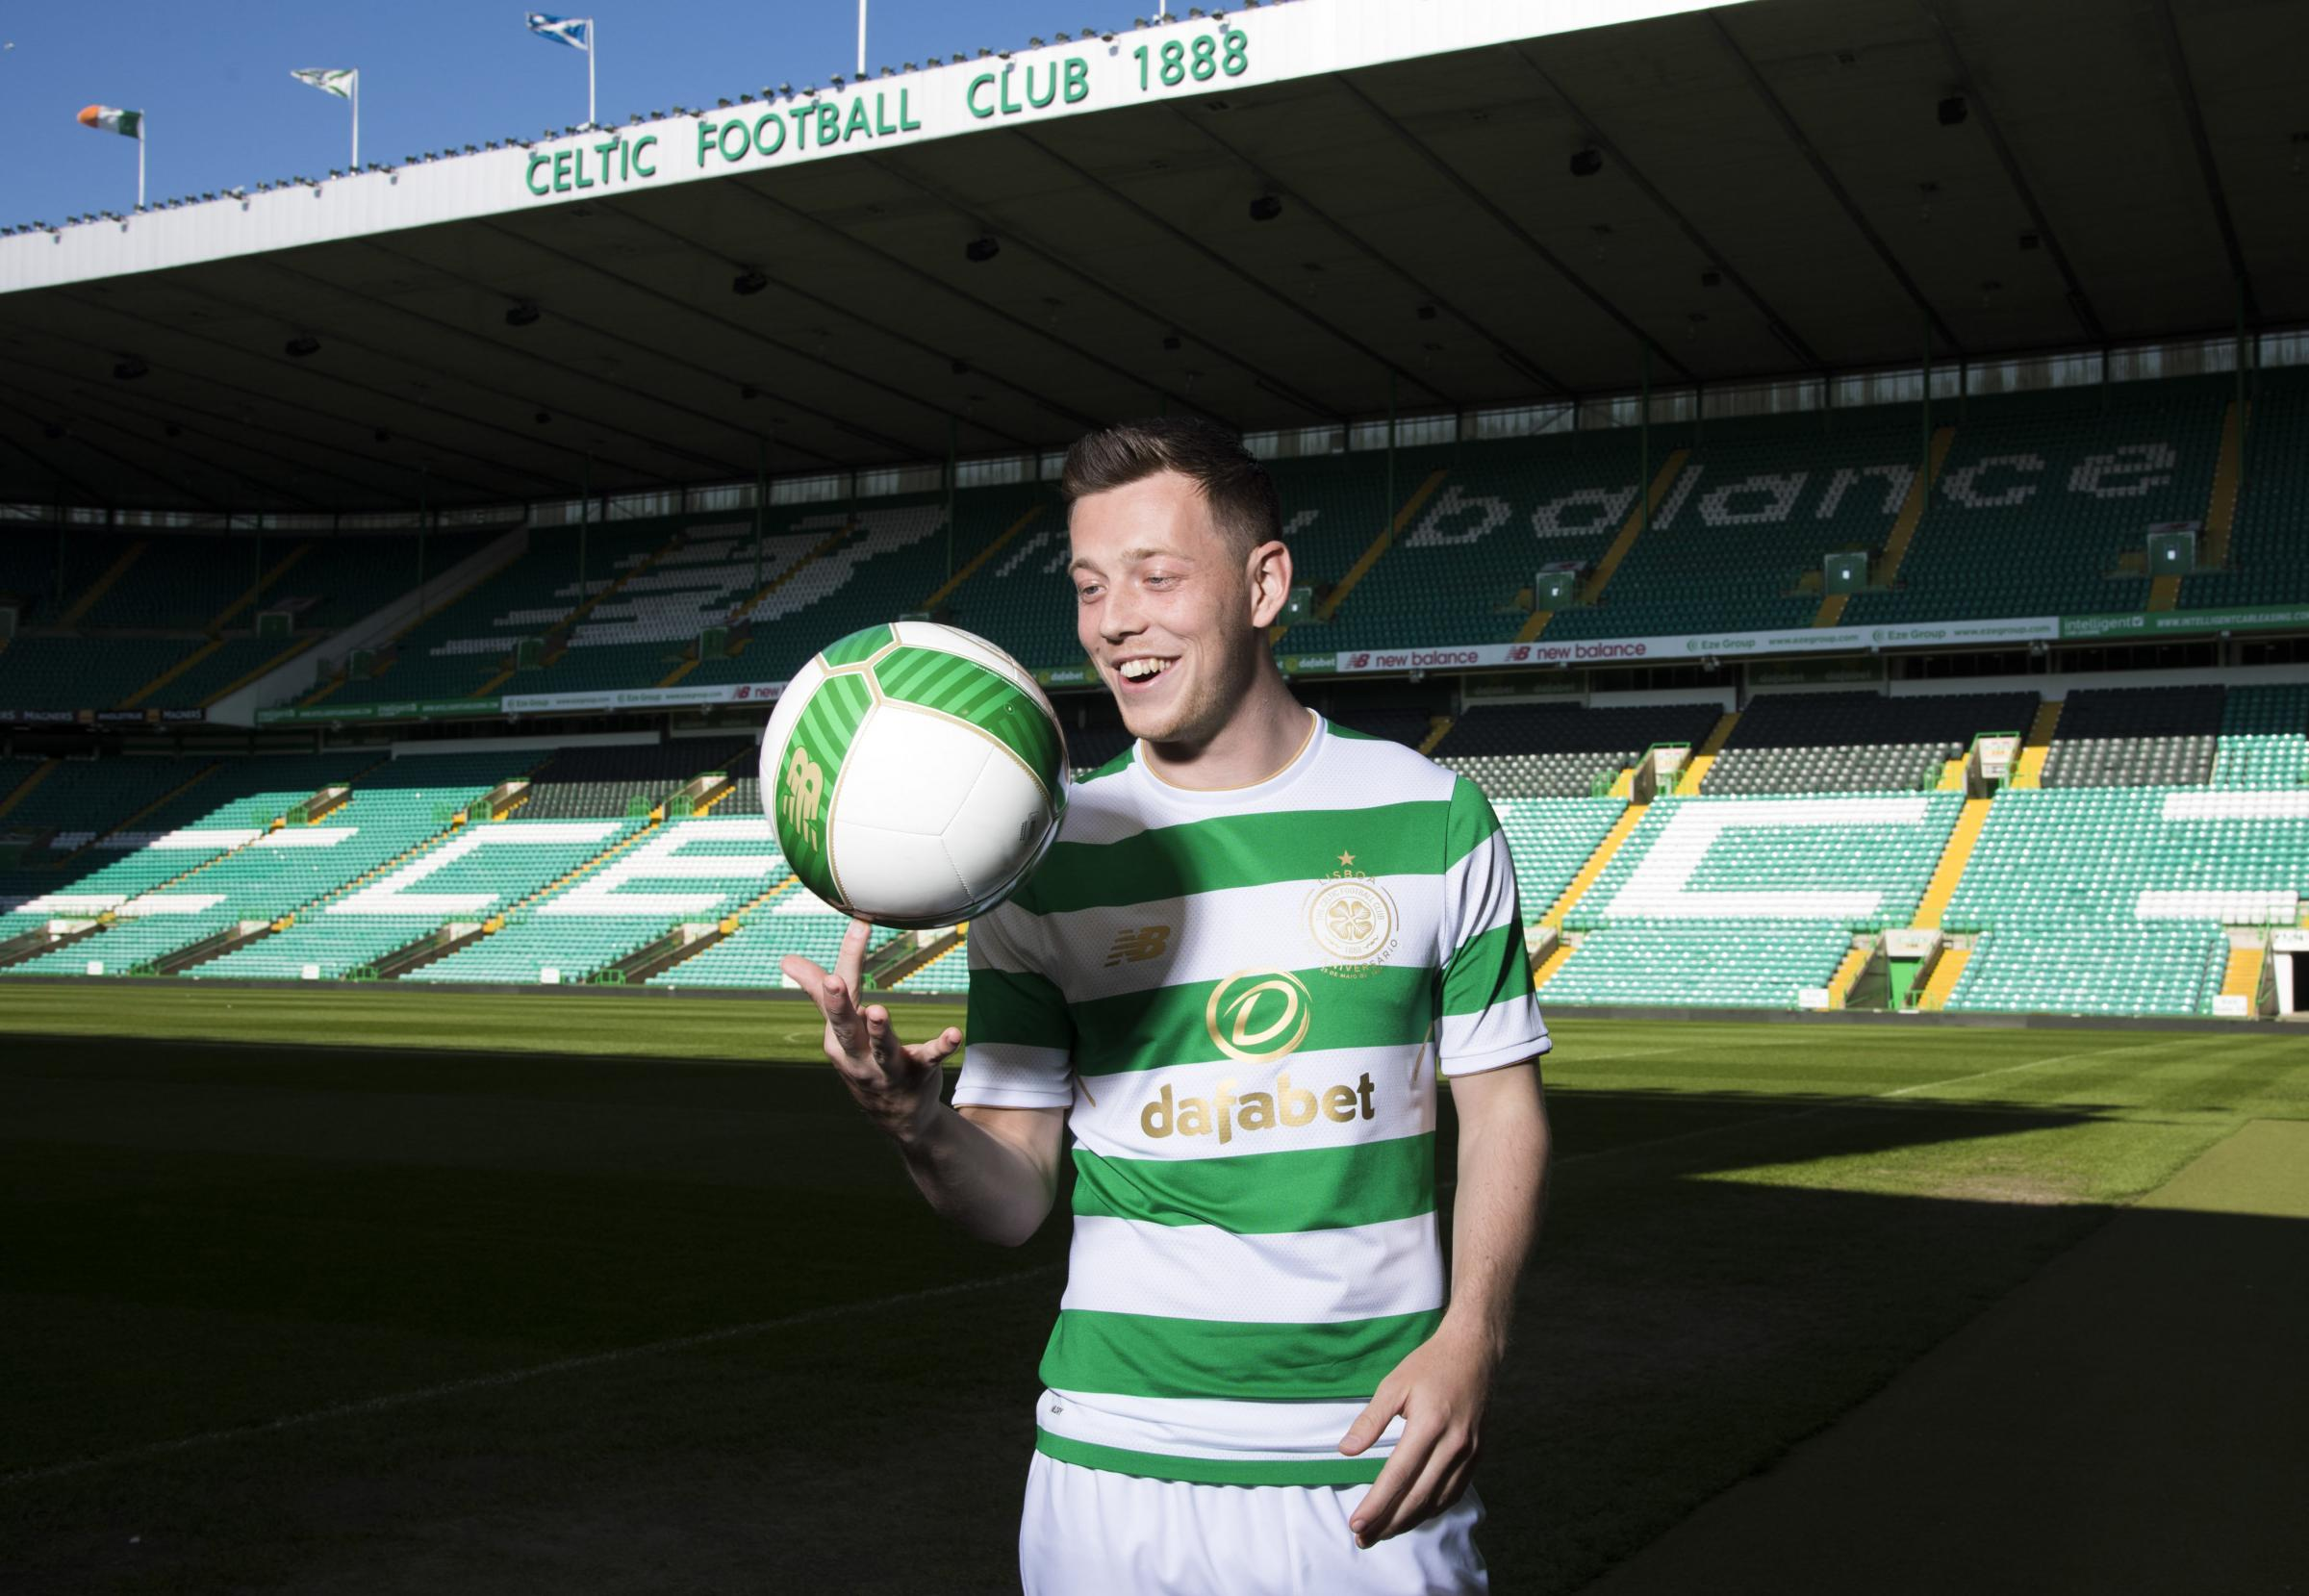 Callum McGregor looking to improve on stellar season with Celtic by going on extended European run